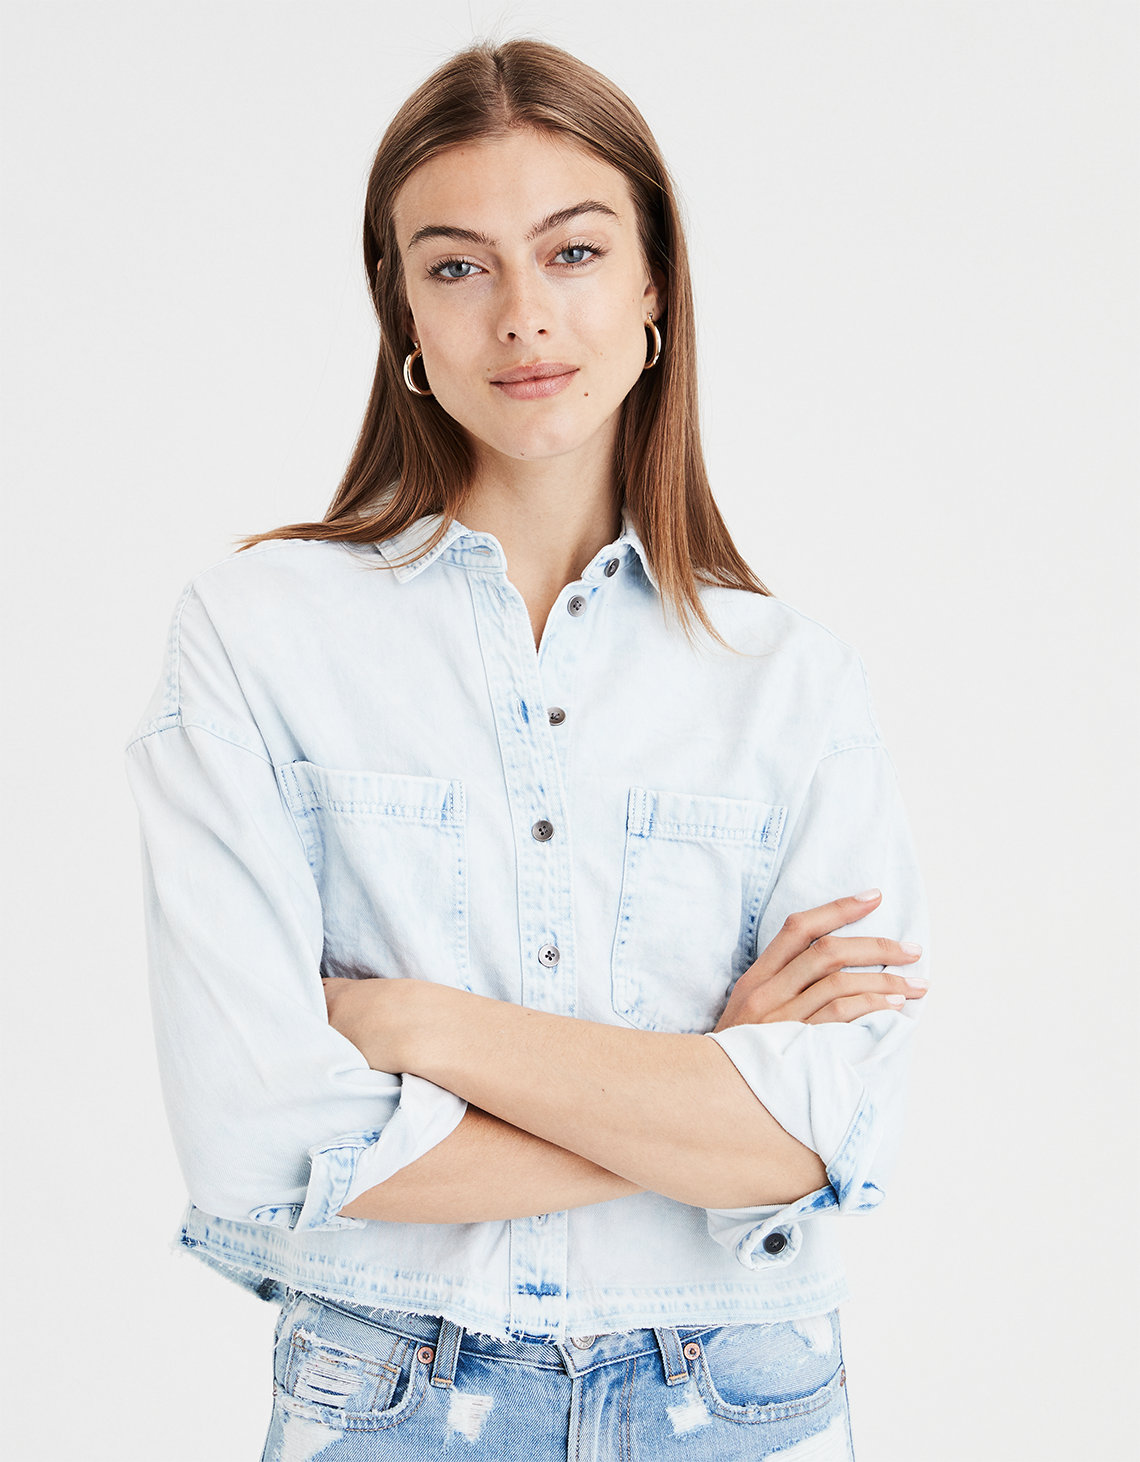 b4c83a79c6b AE Cropped Denim BUTTON-DOWN SHIRT. Placeholder image. Product Image